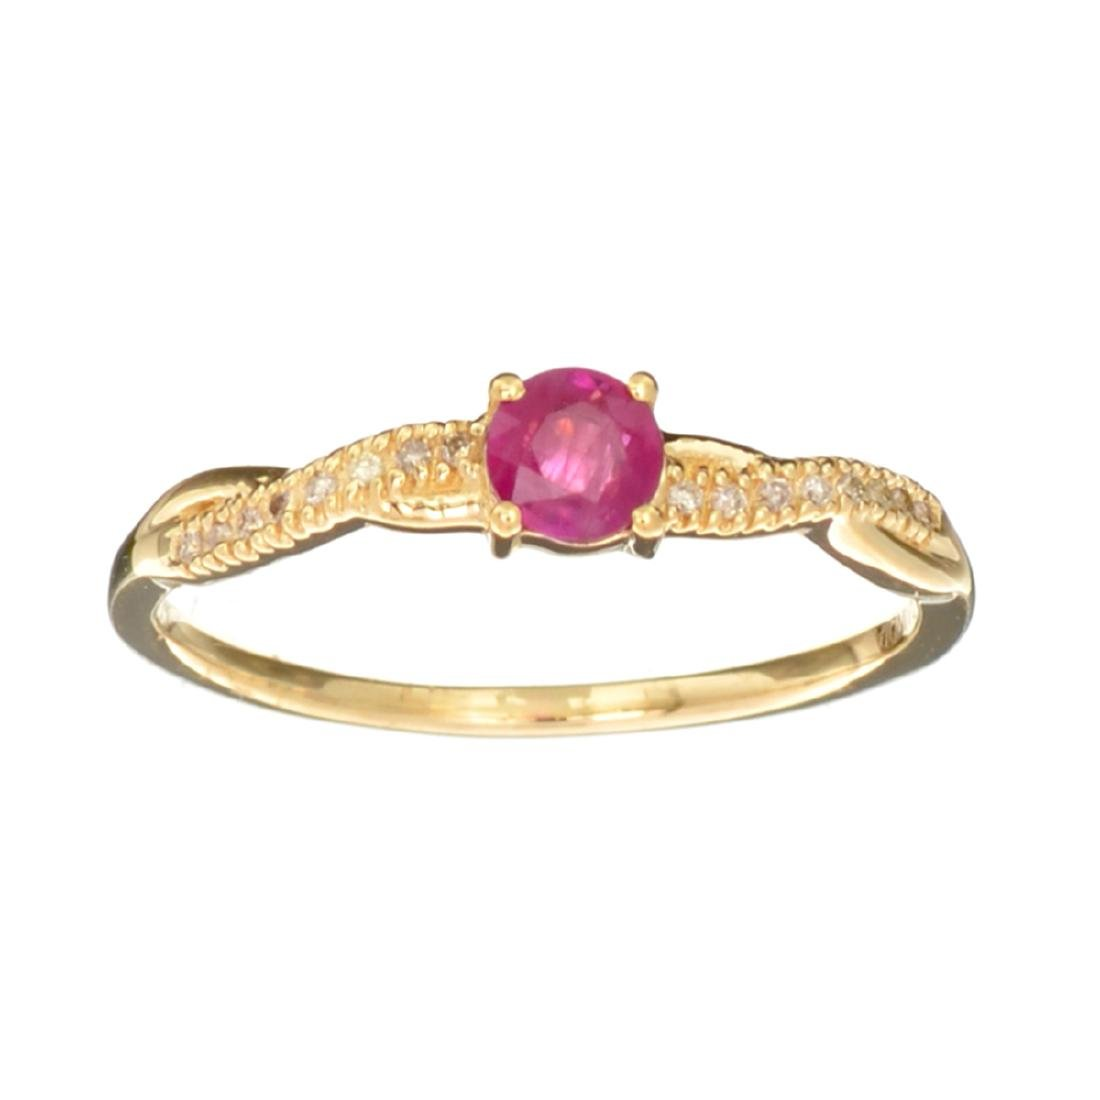 Designer Sebastian 14KT Gold 0.43CT Round Cut Ruby and